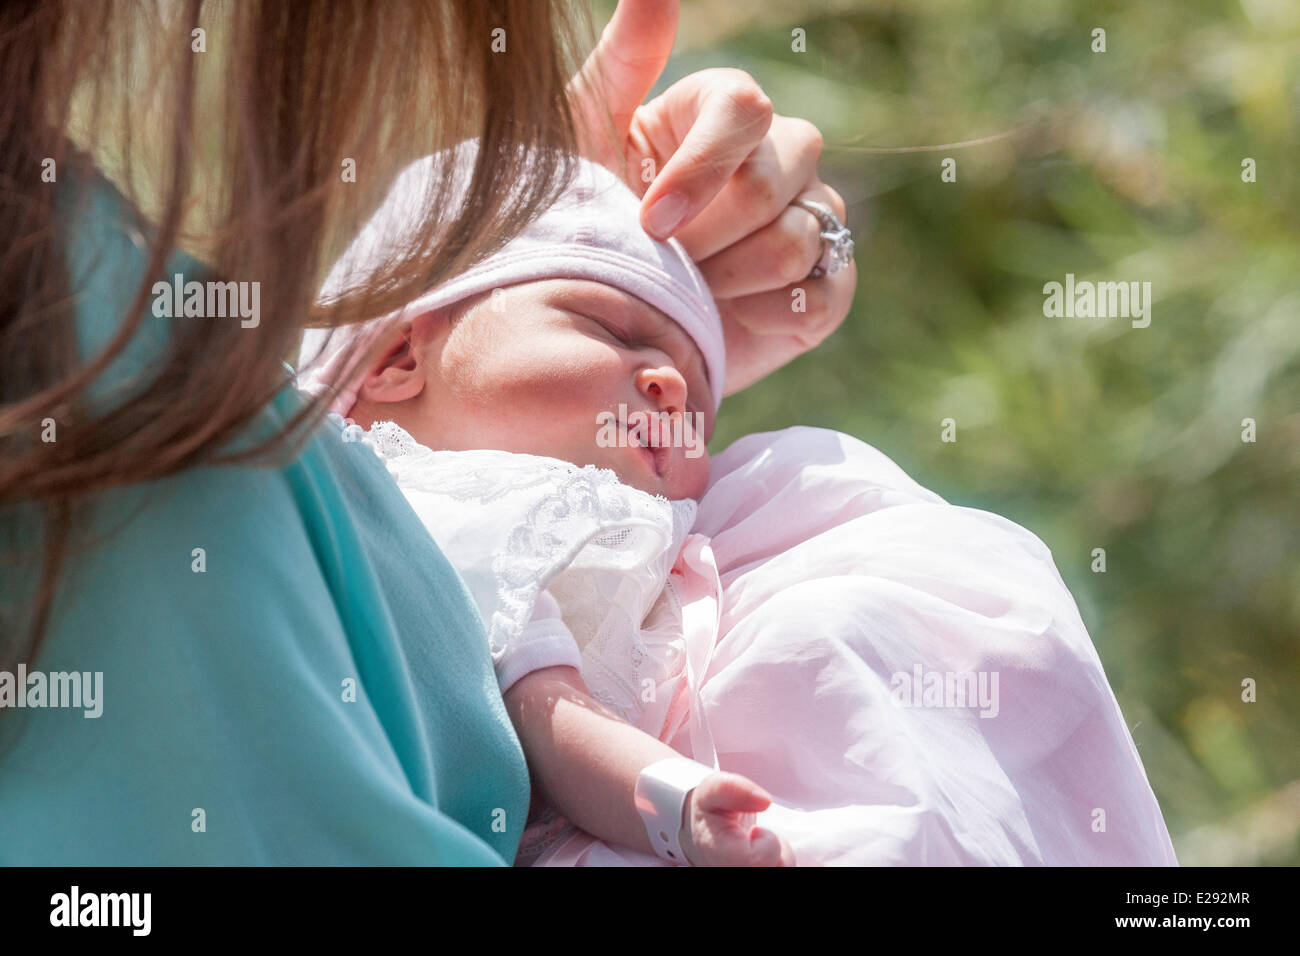 Luxembourg. 17th June 2014. Princess Amalia was born on 15th June 2014. Today she is leaving hospital on the arms - Stock Image